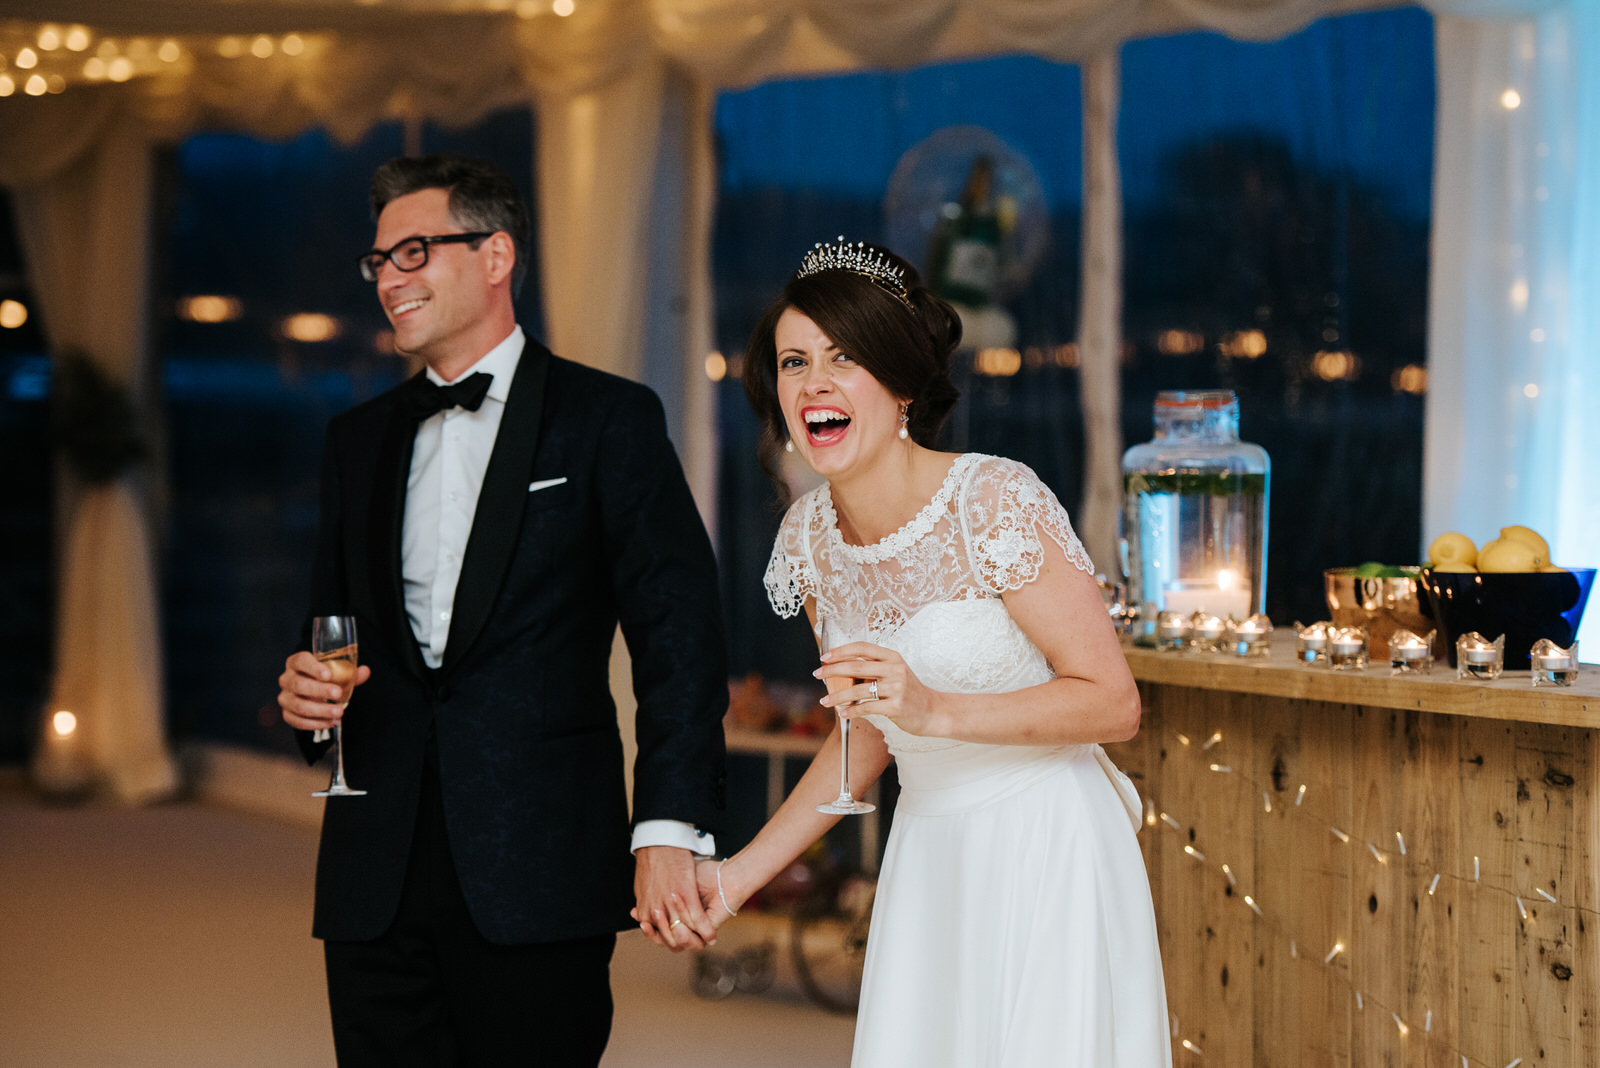 Bride laughs as other speeches are delivered